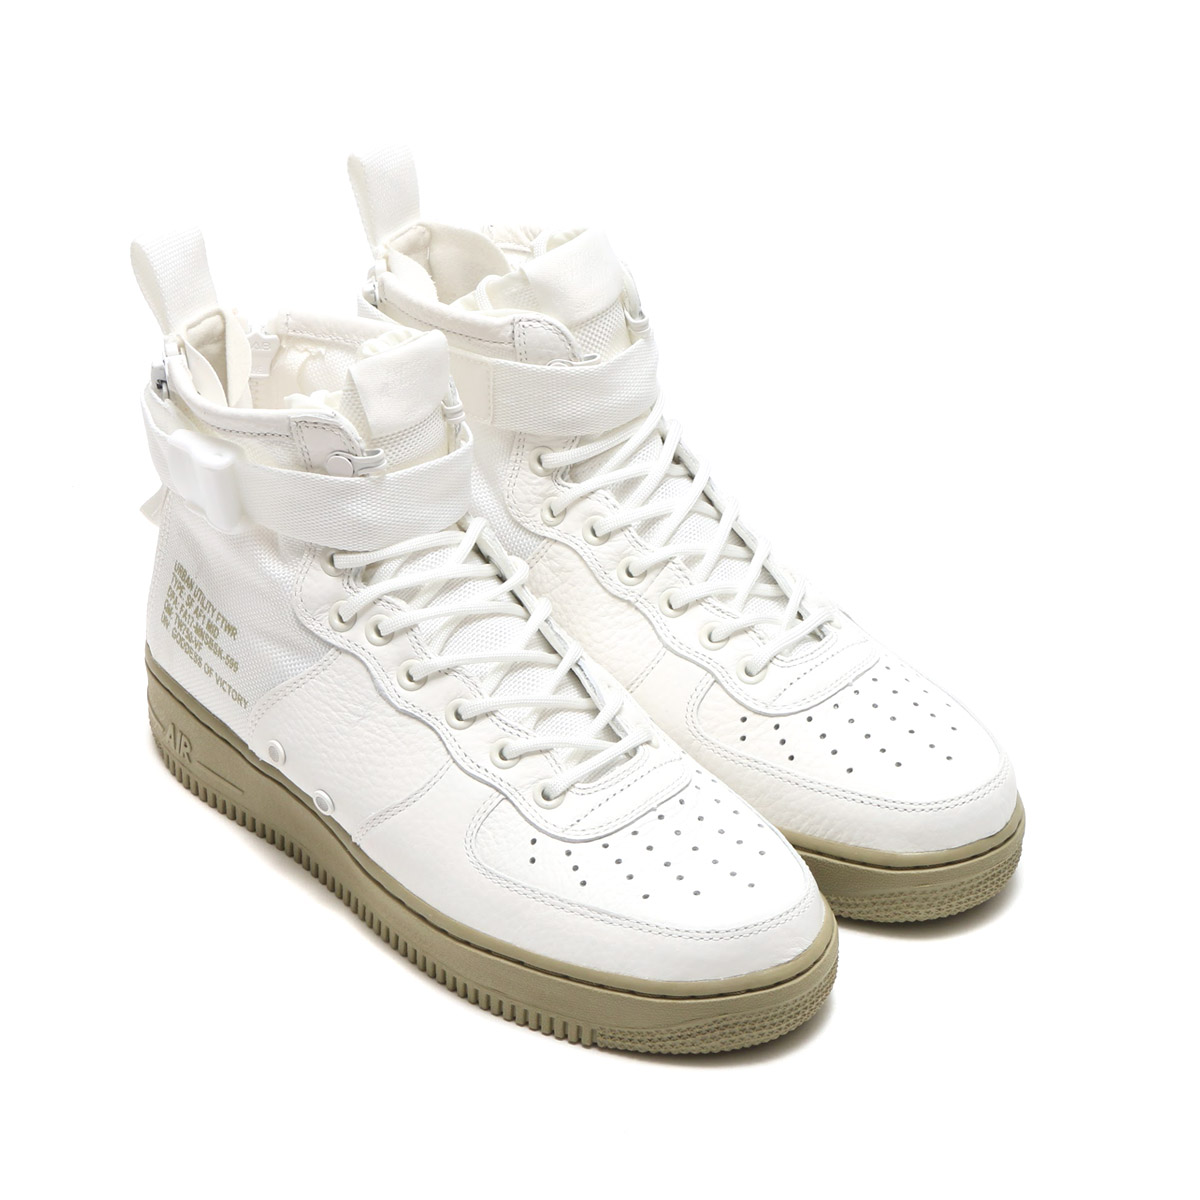 newest b1b77 e75b5 NIKE SF AF1 MID (Nike special field air force 1 mid) (IVORYIVORY-NEUTRAL  OLIVE) 17FA-S